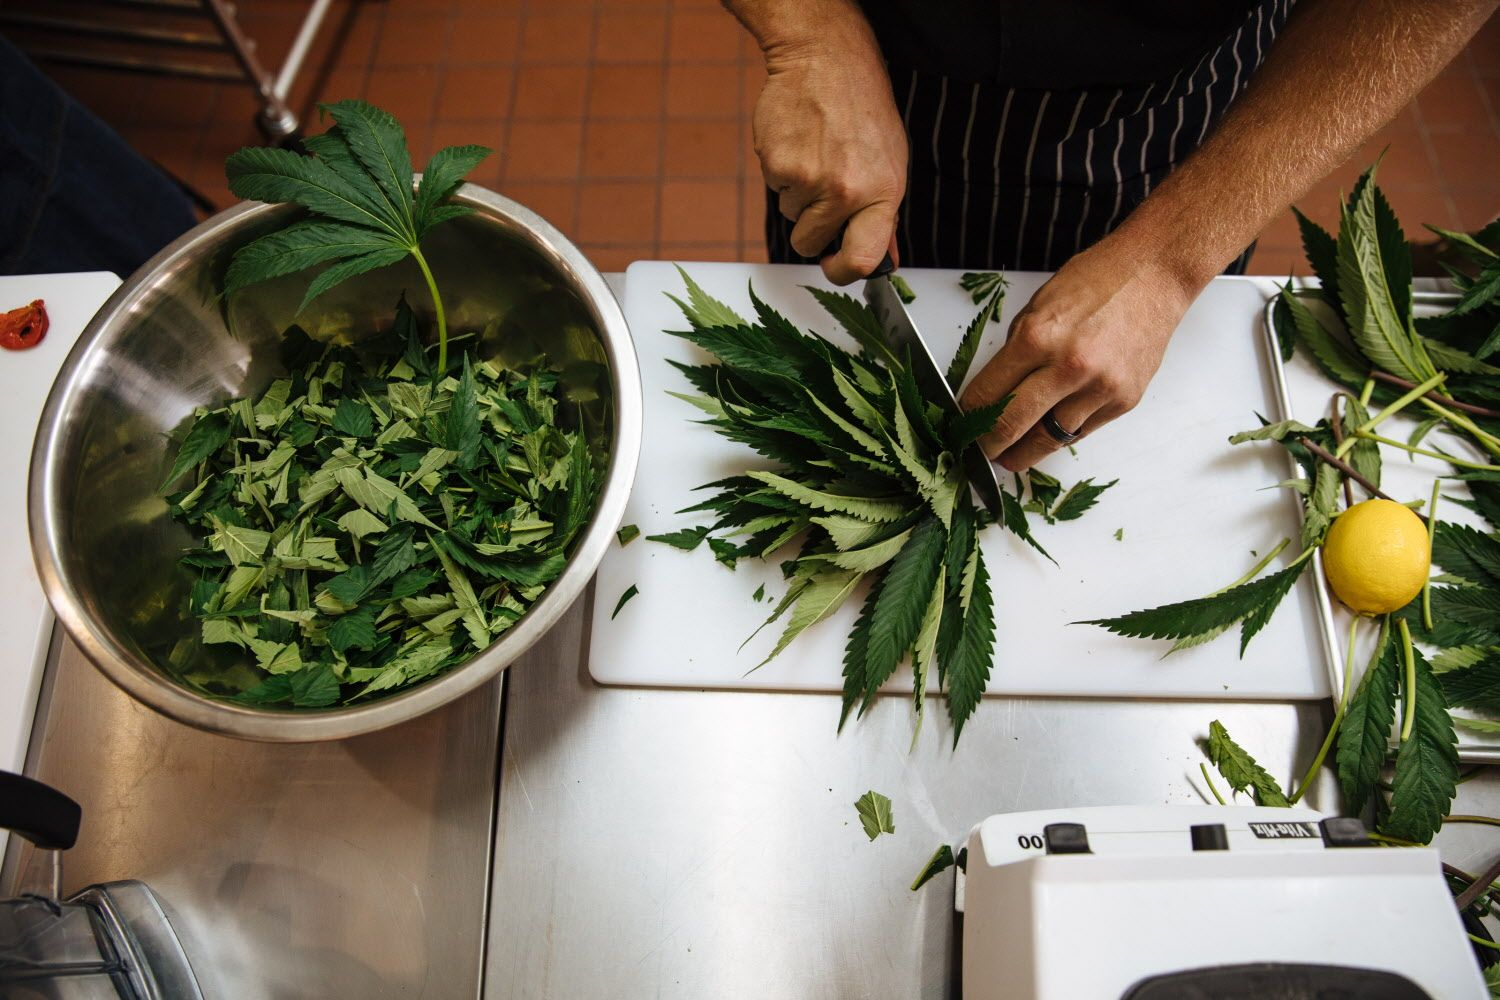 Payton Curry, founder of Flourish Cannabis, prepares to juice marijuana leaves, which will be served at their Cannavore Dining event in San Francisco, Calif. Tuesday, August 8, 2017. Photo: Mason Trinca